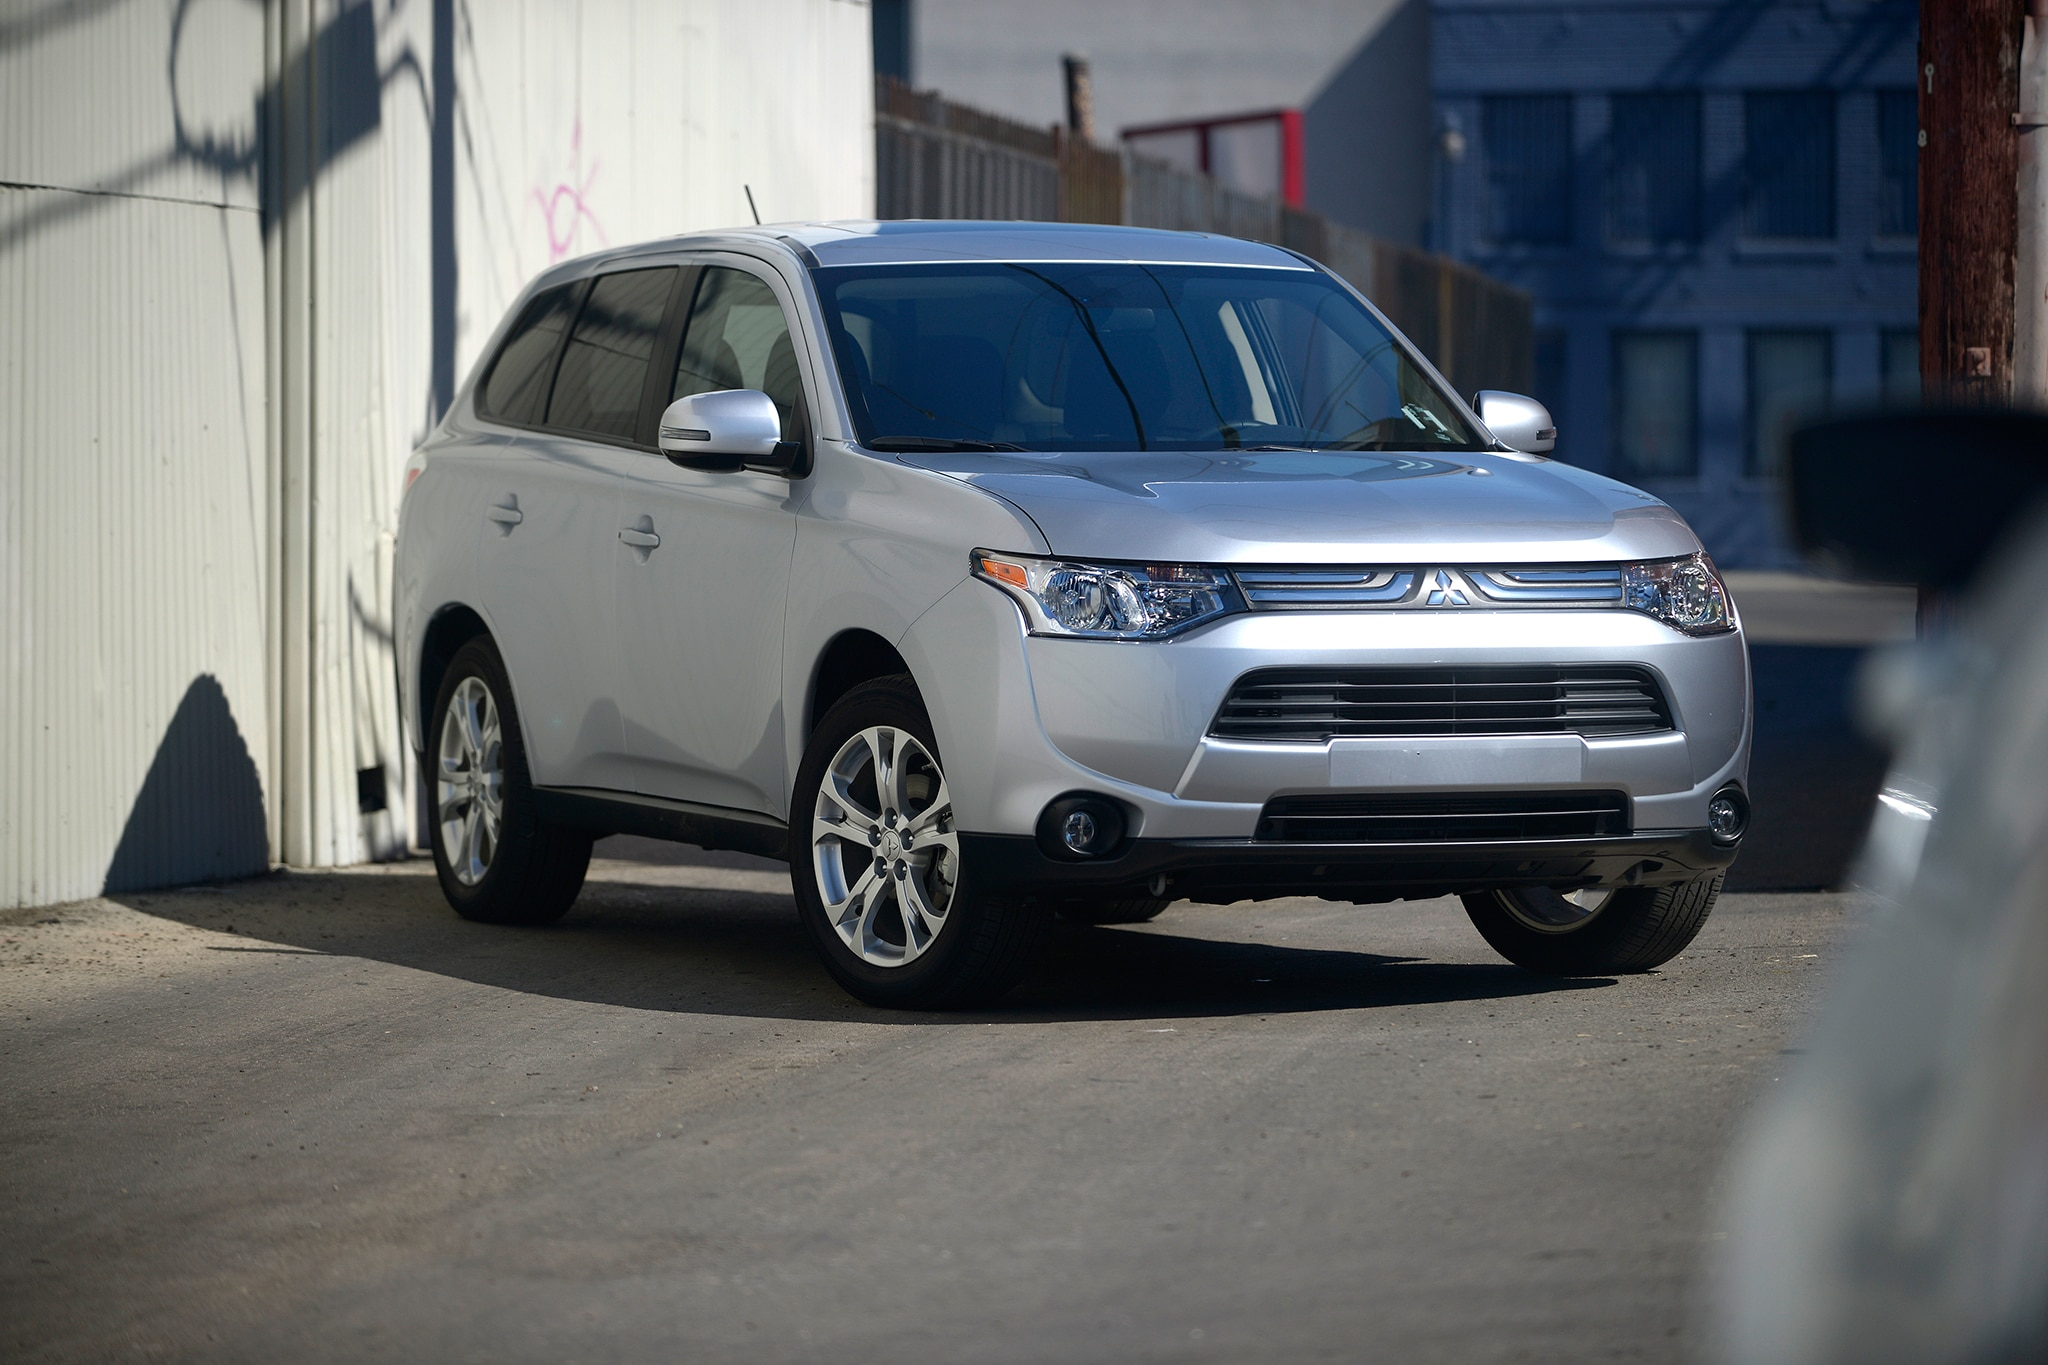 2014 Mitsubishi Outlander SE S-AWC Long-Term Update 2